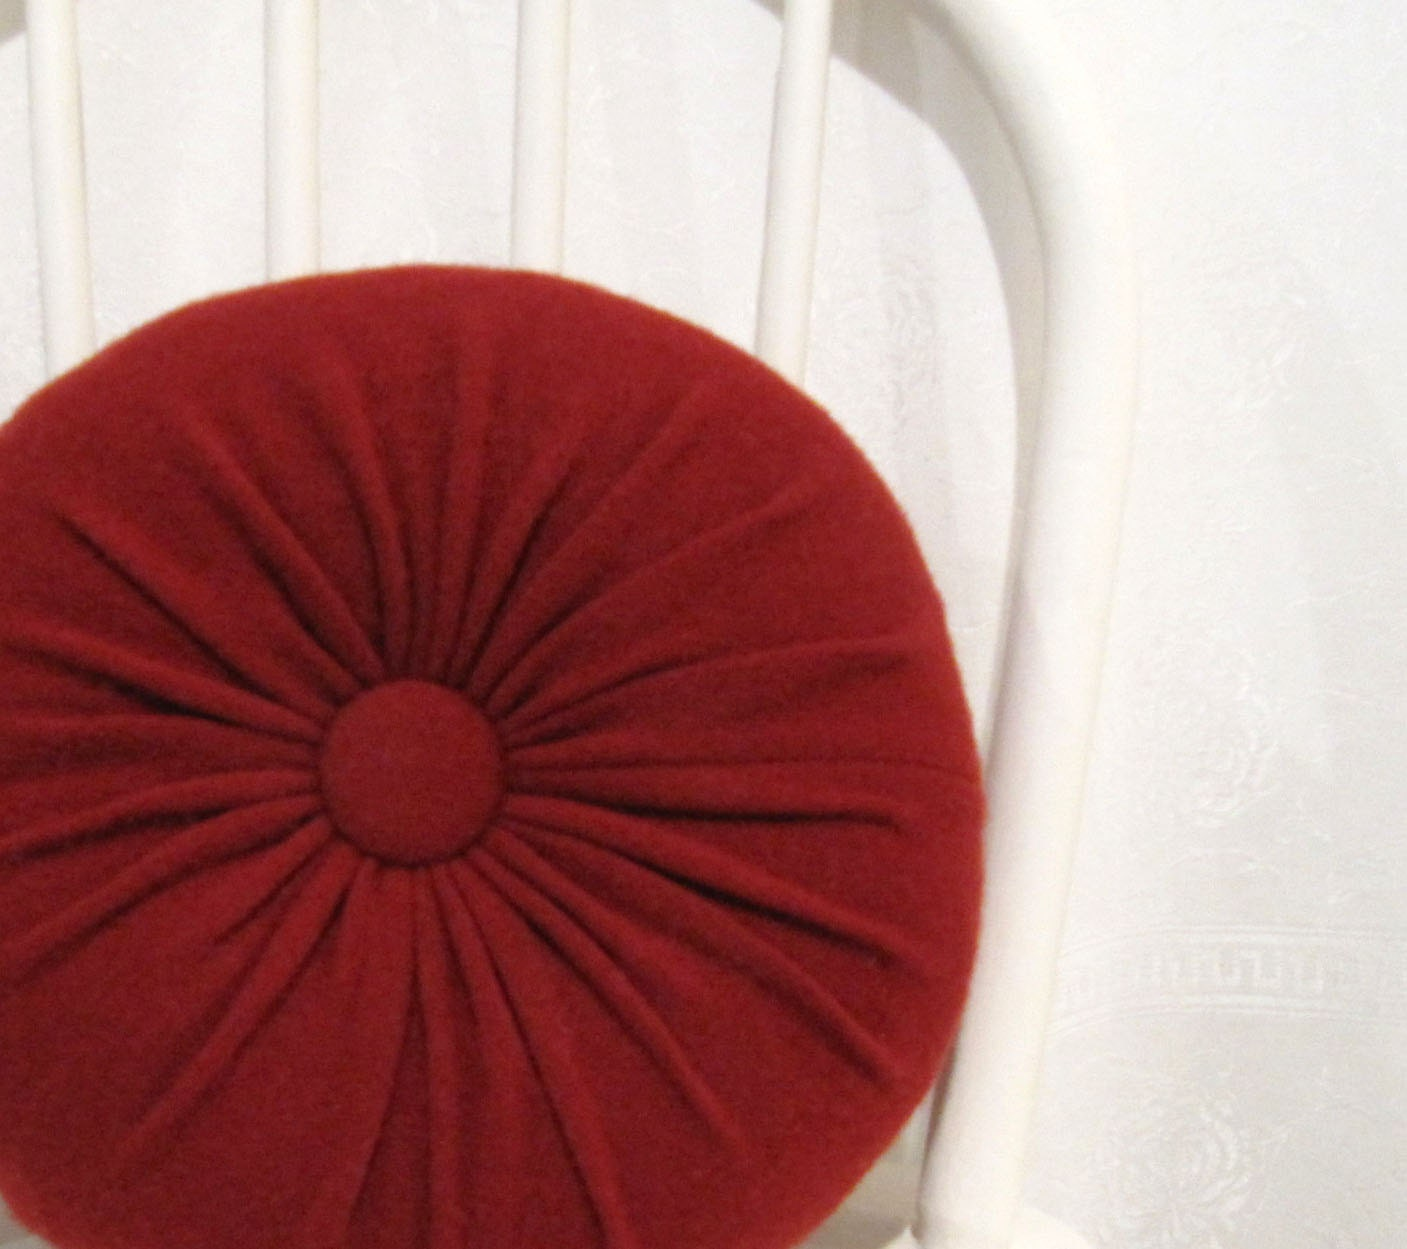 Throw Pillow Round : Red Cashmere Round Throw Pillow / Accent Decorative Couch